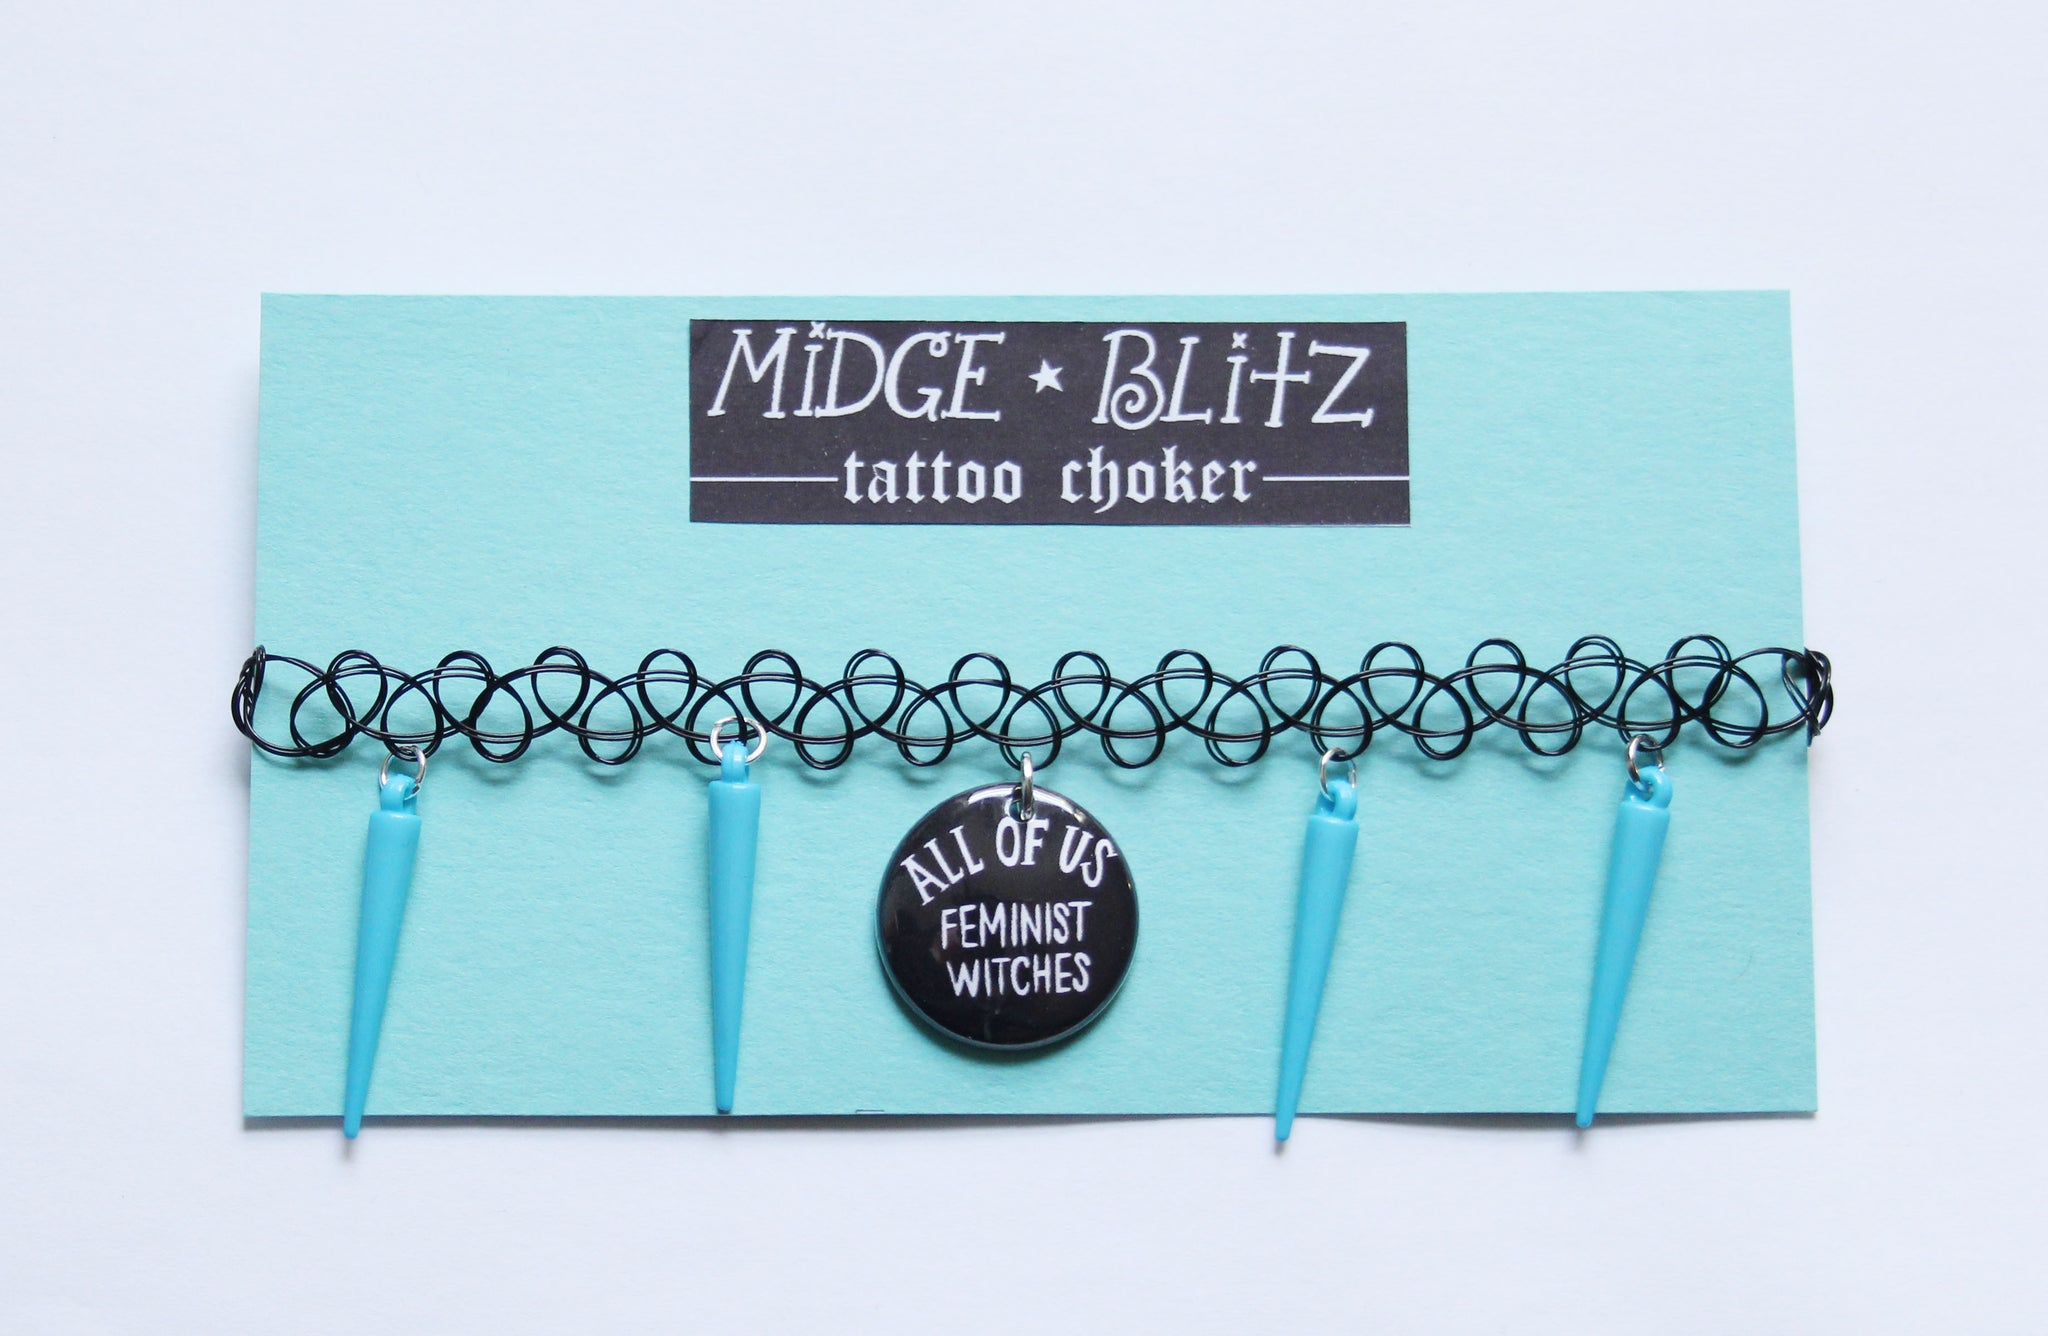 All of Us Feminist Witches Tattoo Choker w Blue Spikes